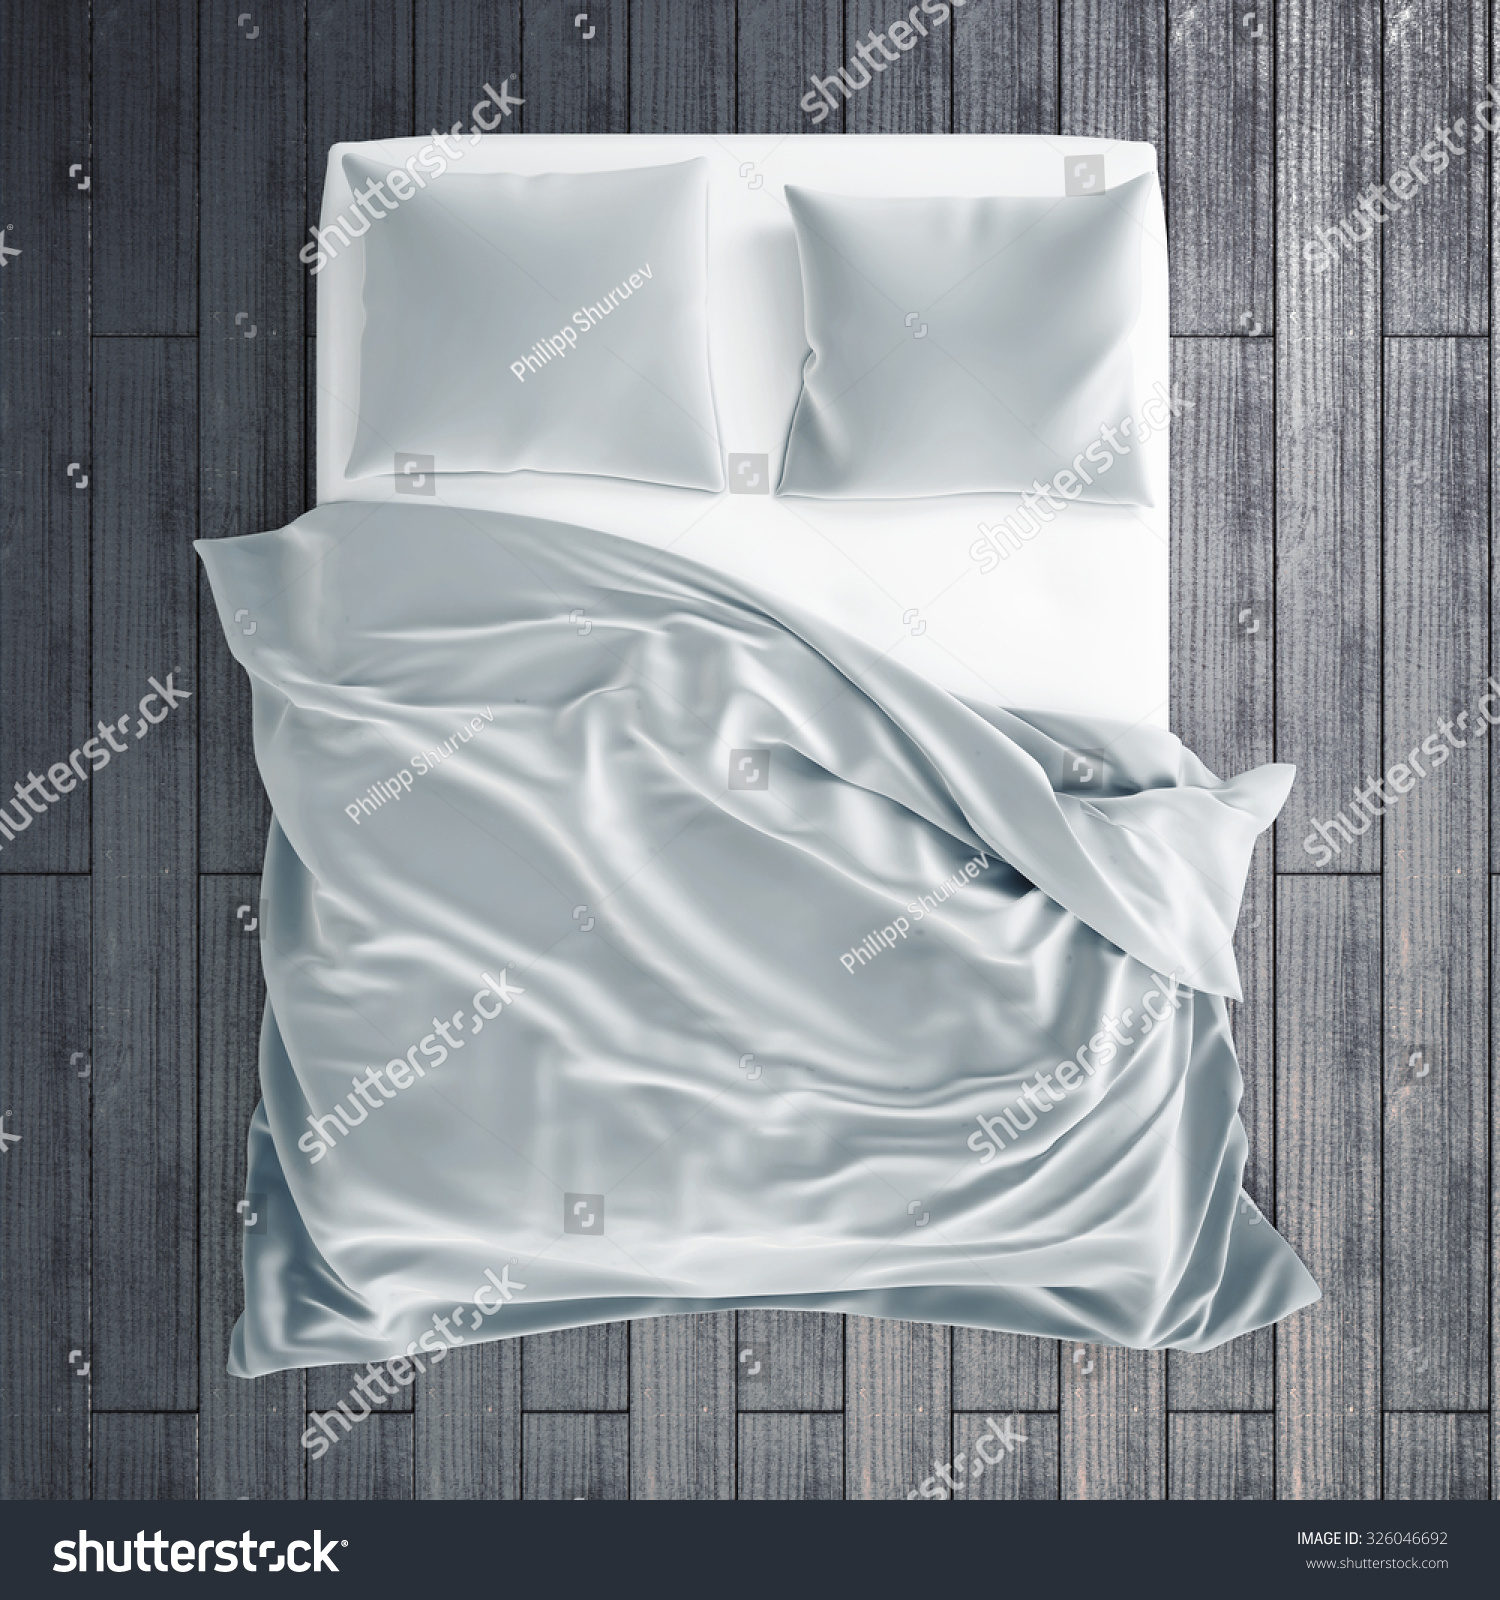 3d illustration of bed in the bedroom view from the top bed